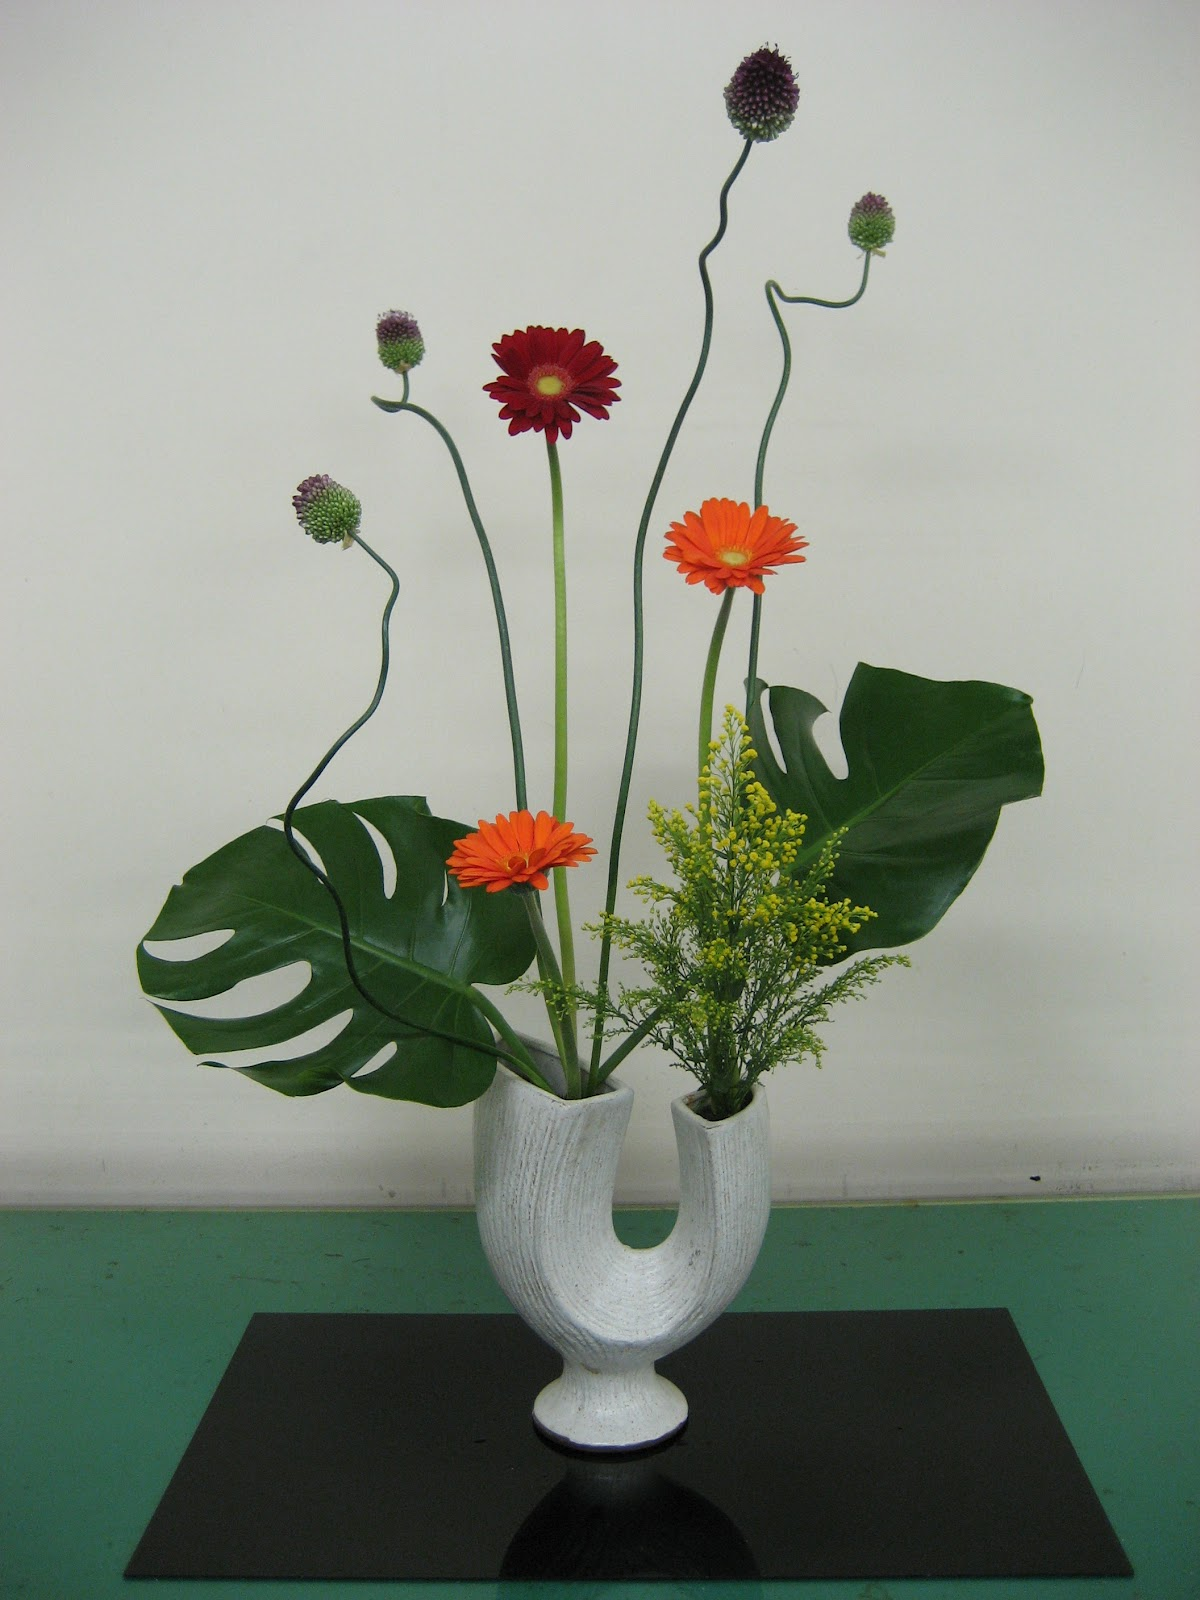 ikebana Ikebana - flower arranging while flower arrangement for many people in the west consists of symmetrically arranging flowering plants in a vase, japanese ikebana (literally 'flowers kept alive') is a lot more complex.